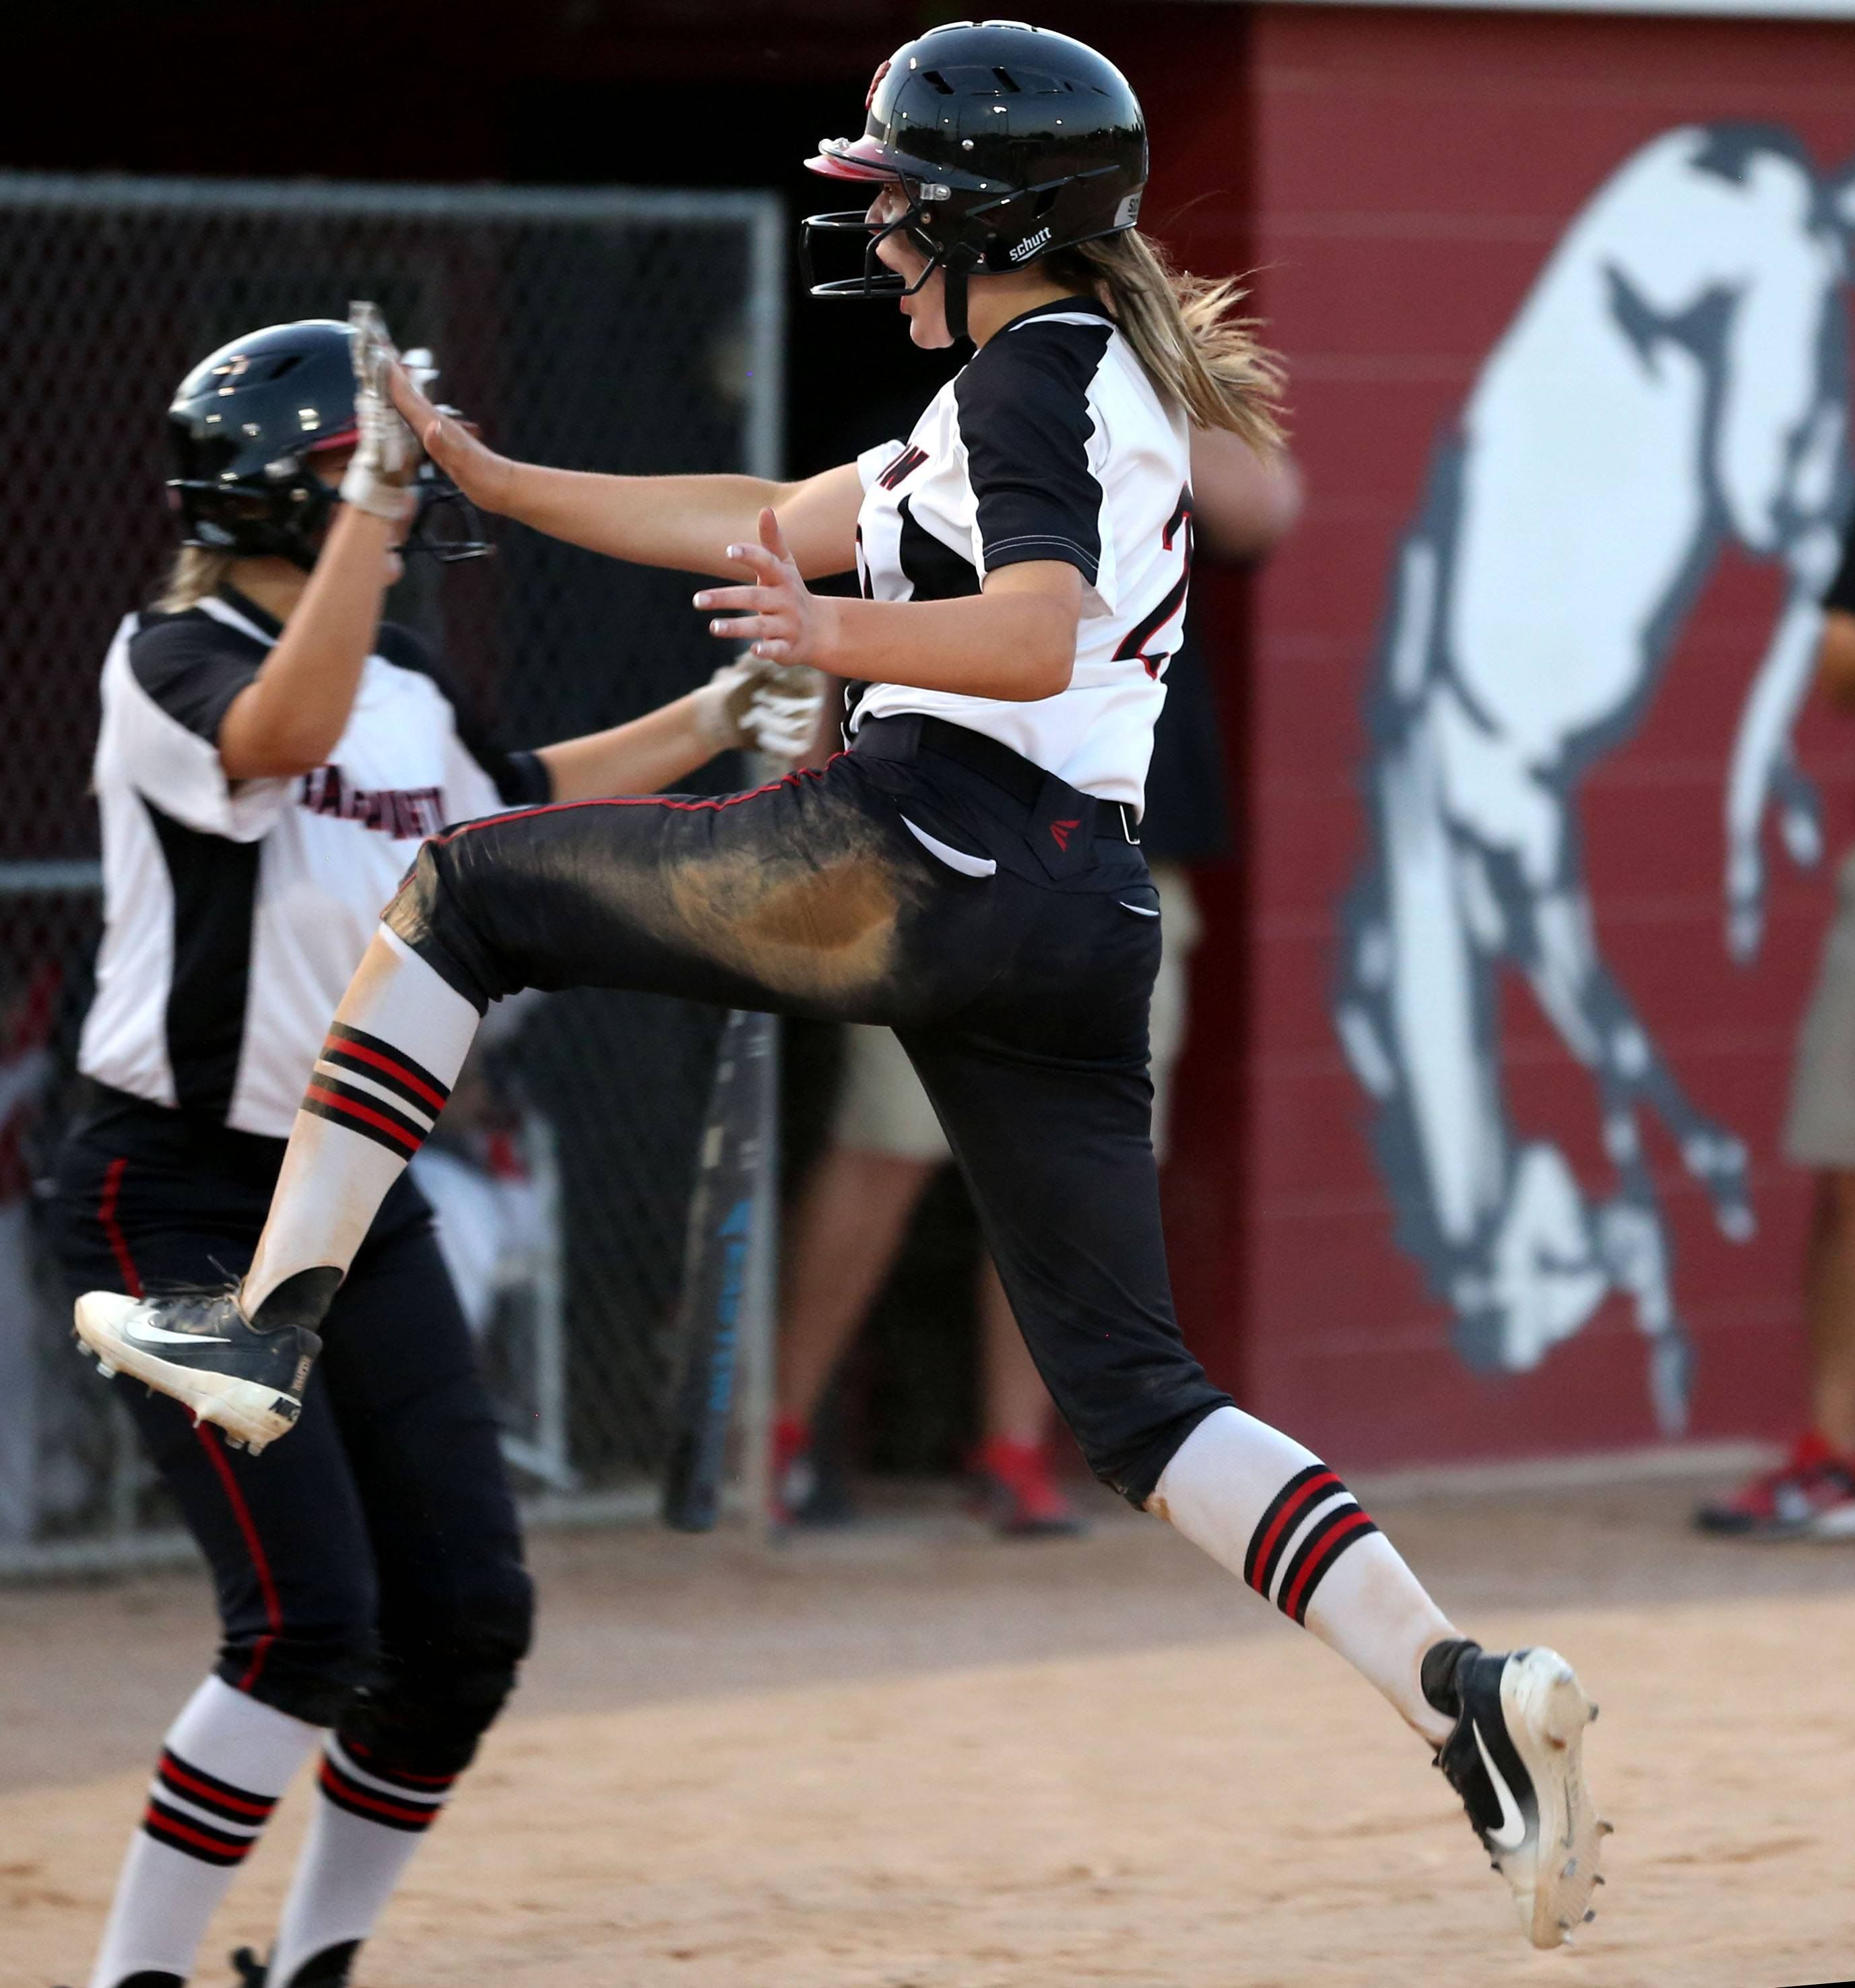 Barrington's Abbey Jacobsen leaps for joy after belting an RBI double in Class 4A supersectional action against Palatine at Barrington on Monday night.